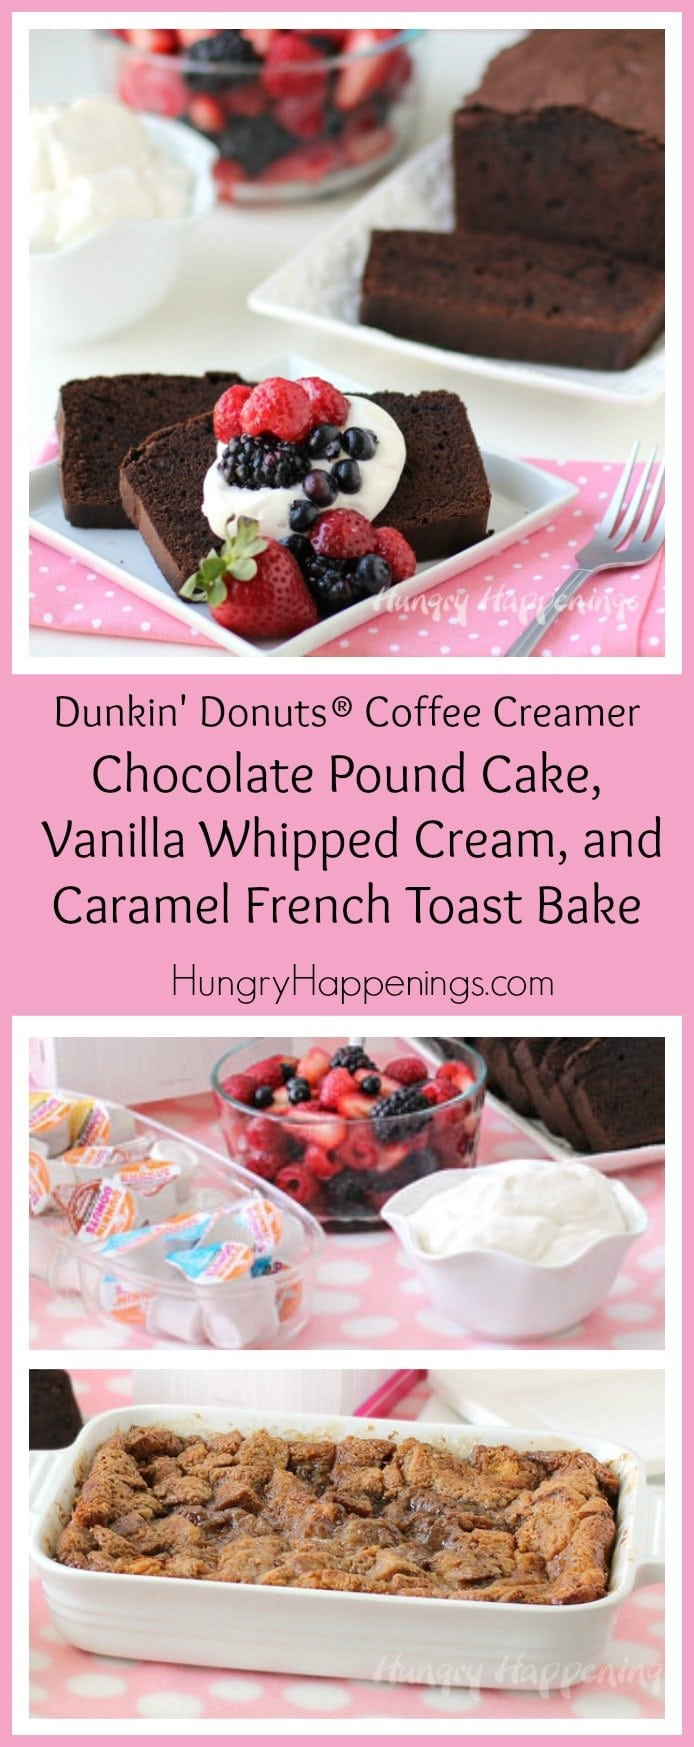 Use Dunkin' Donuts® Coffee Creamer Singles to make Chocolate Hazelnut Pound Cake, Vanilla Whipped Cream, and Caramel French Toast Bake.